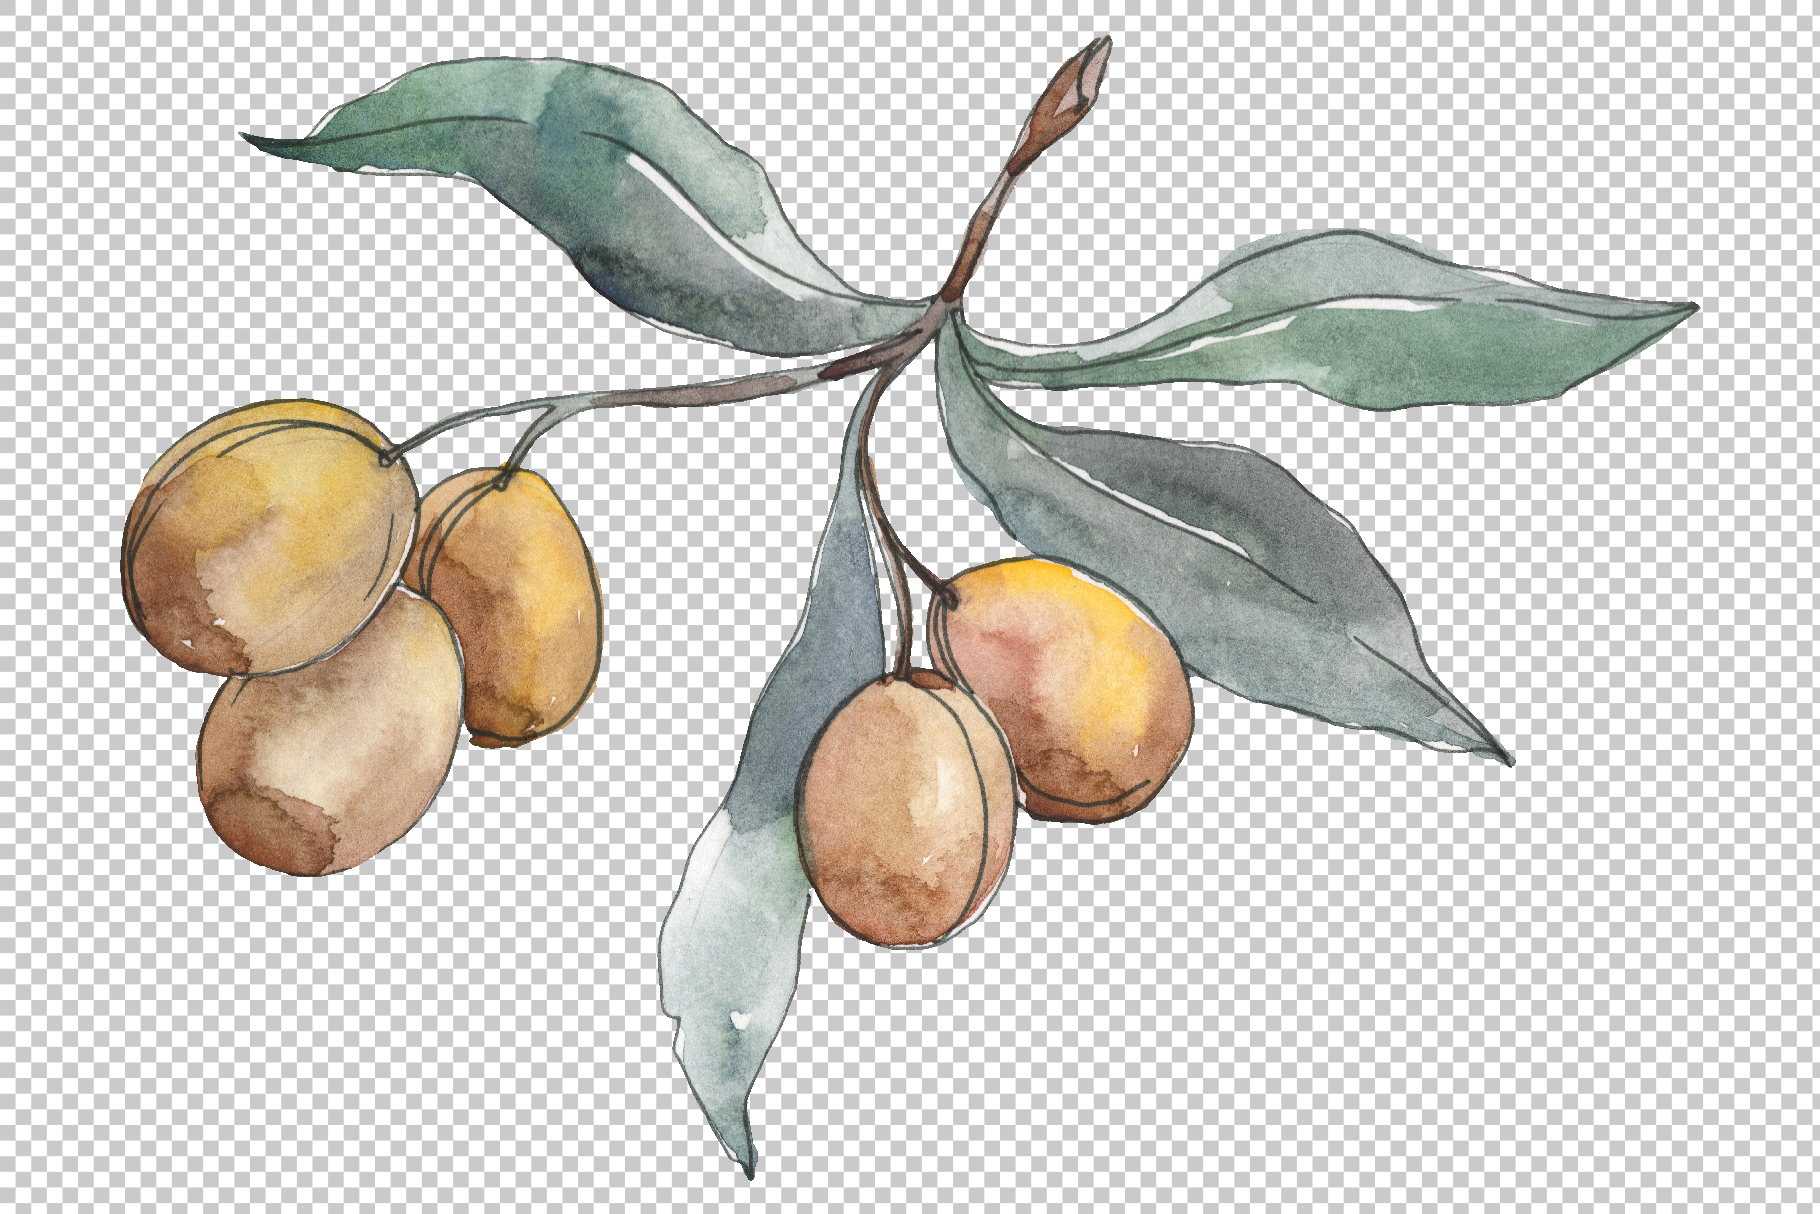 Olives 2 Watercolor png example image 2